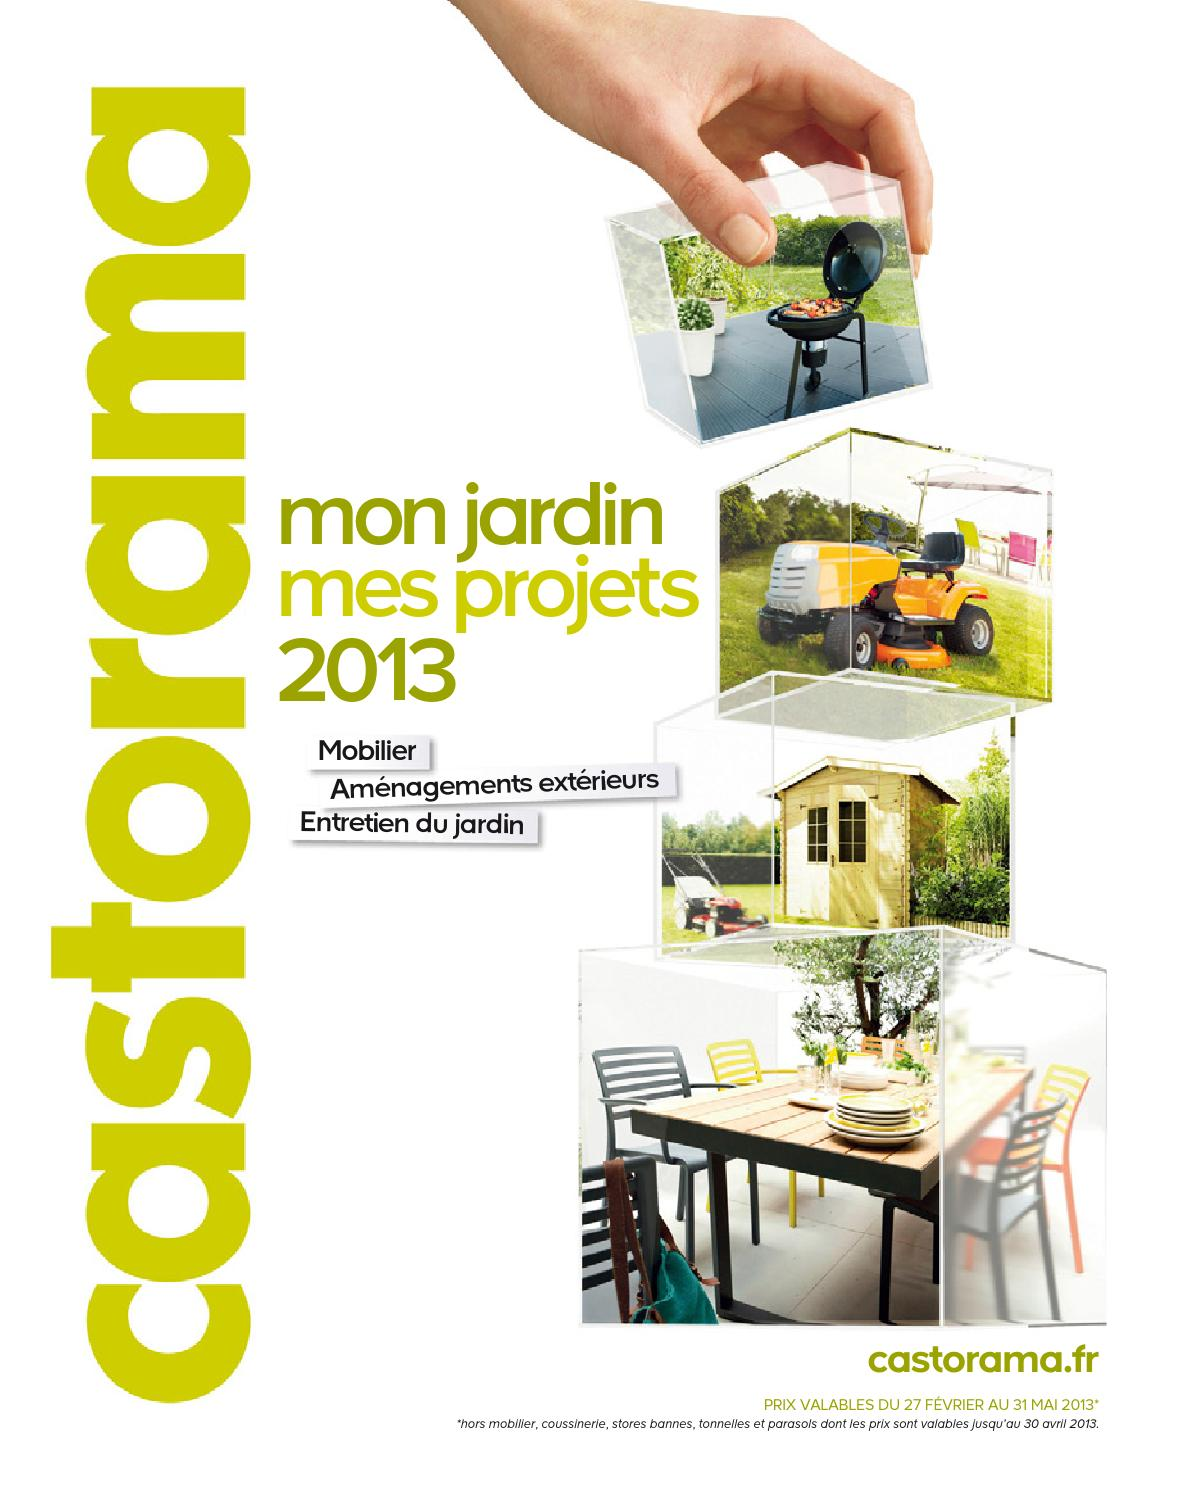 Catalogue castorama jardin projets by margot ziegler issuu for Castorama catalogue jardin